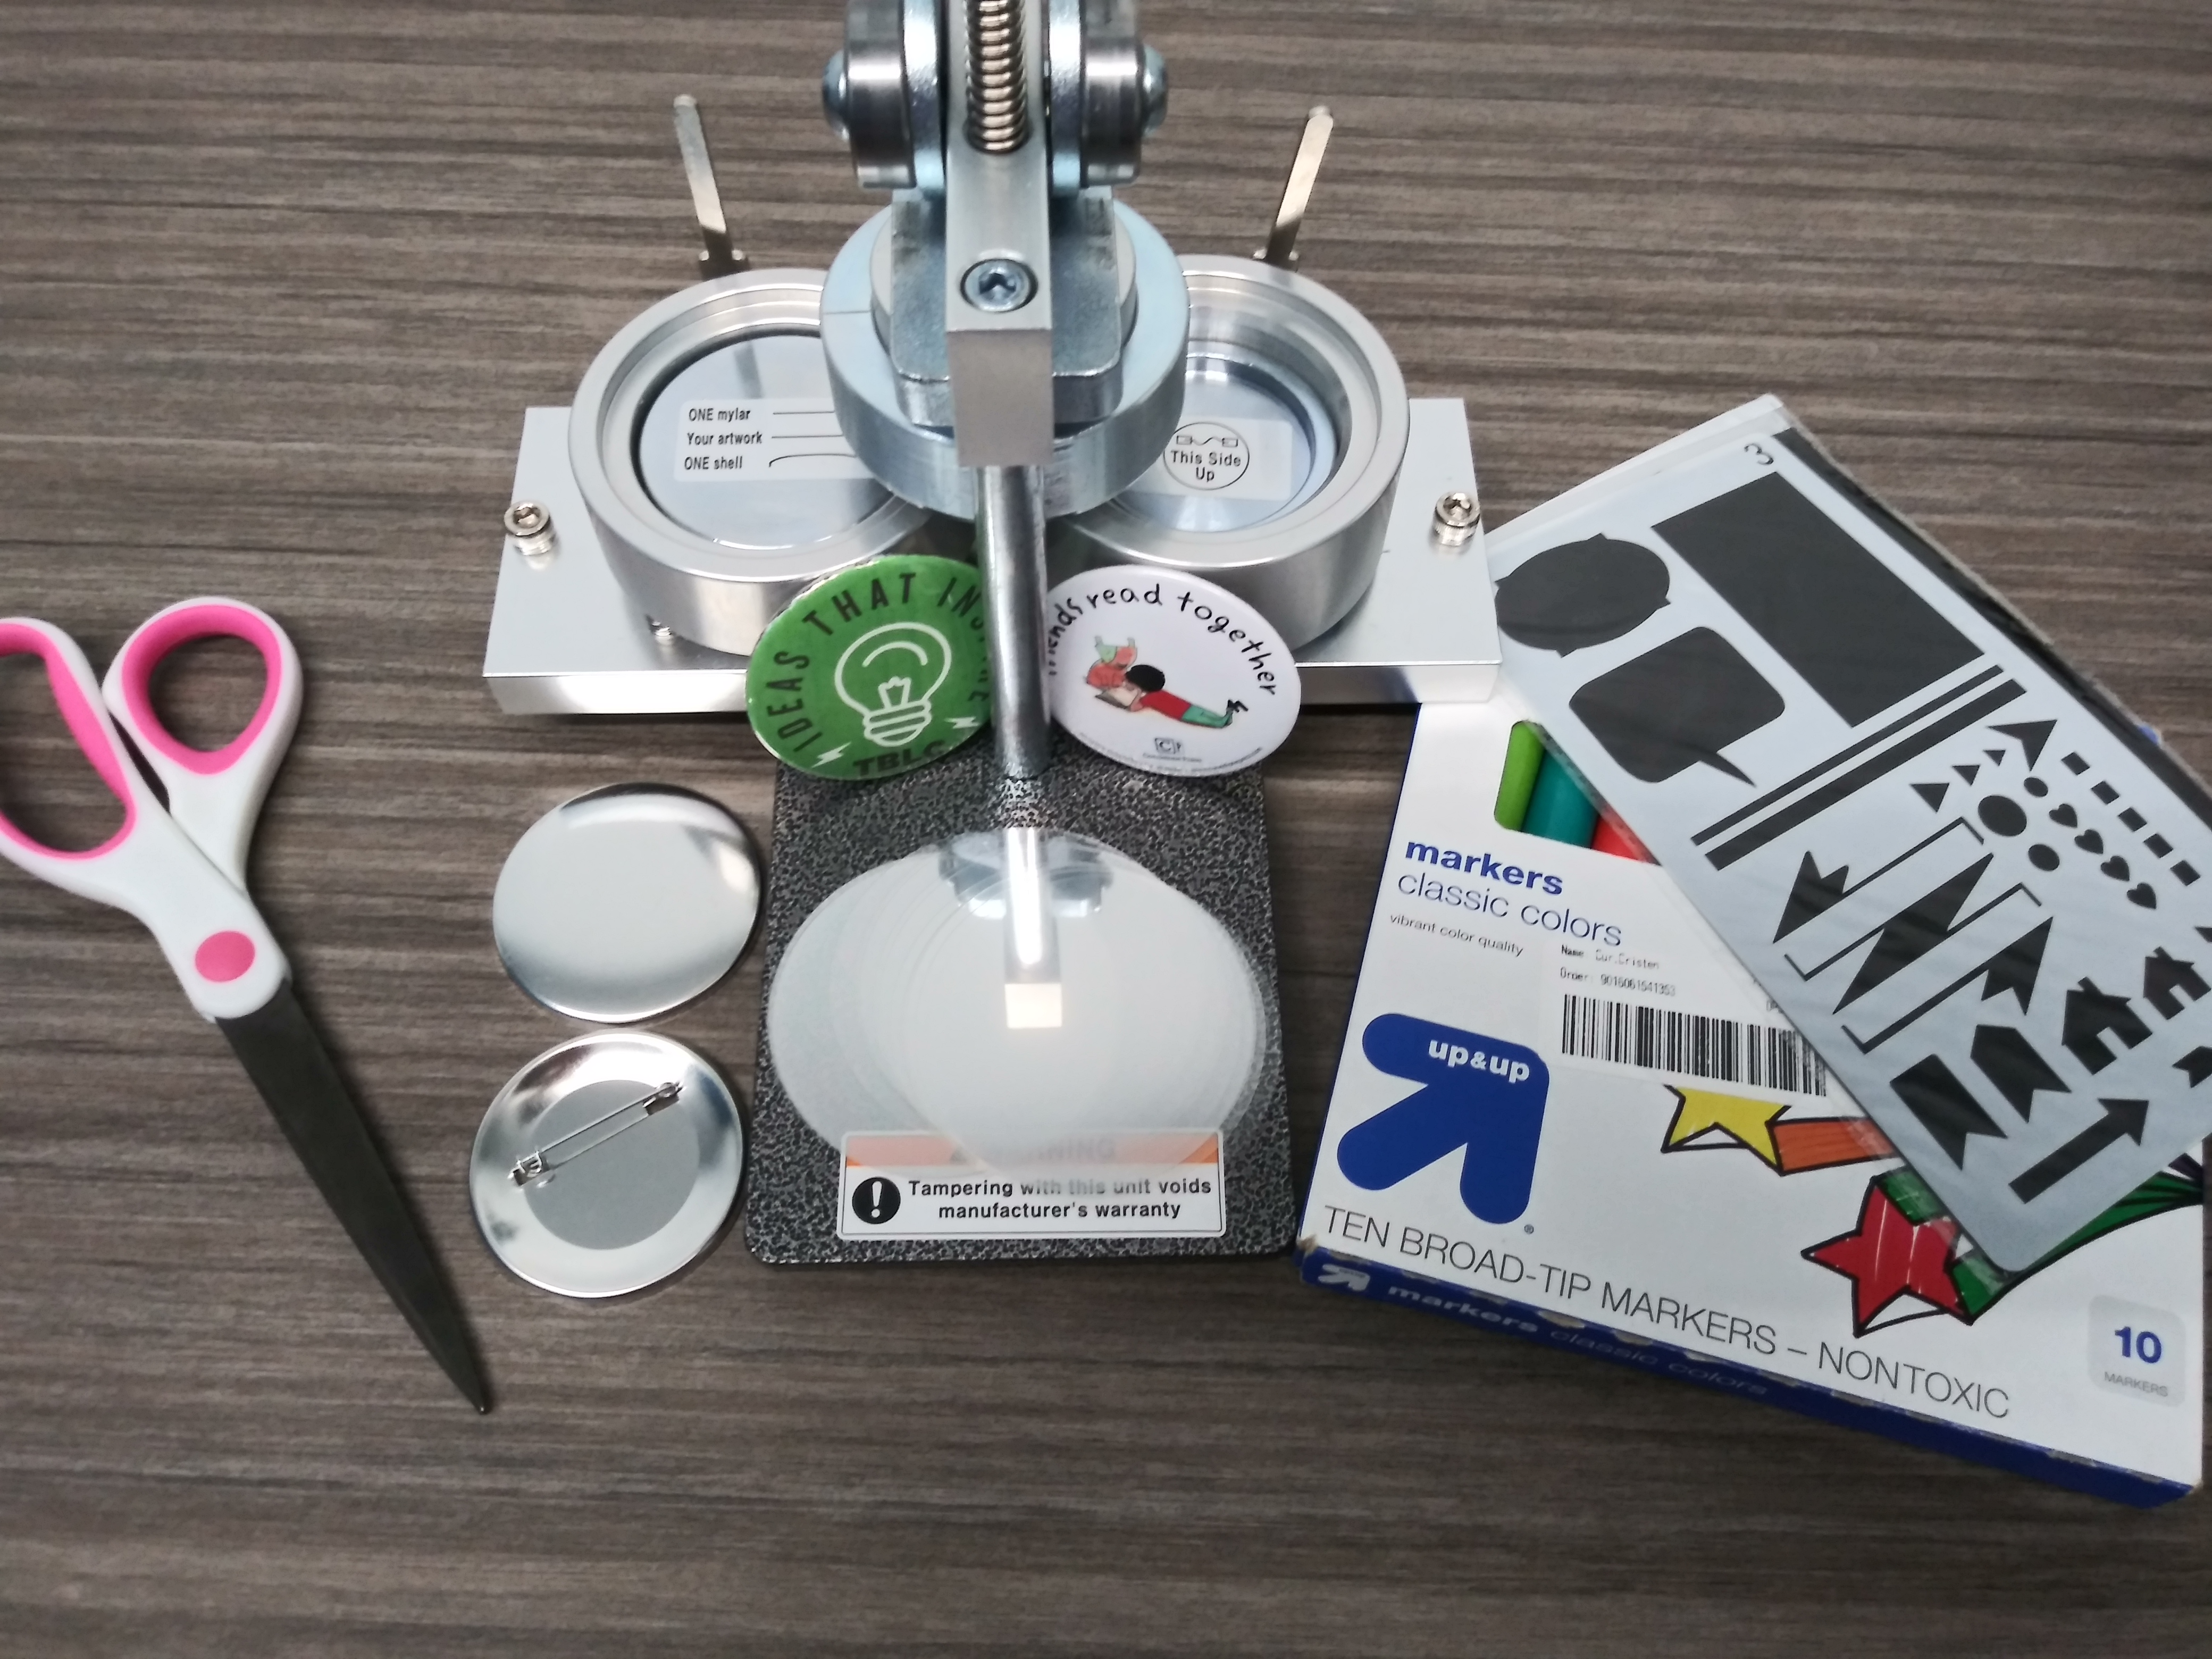 Picture of button maker with accessories including stencils, markers, scissors, and button components